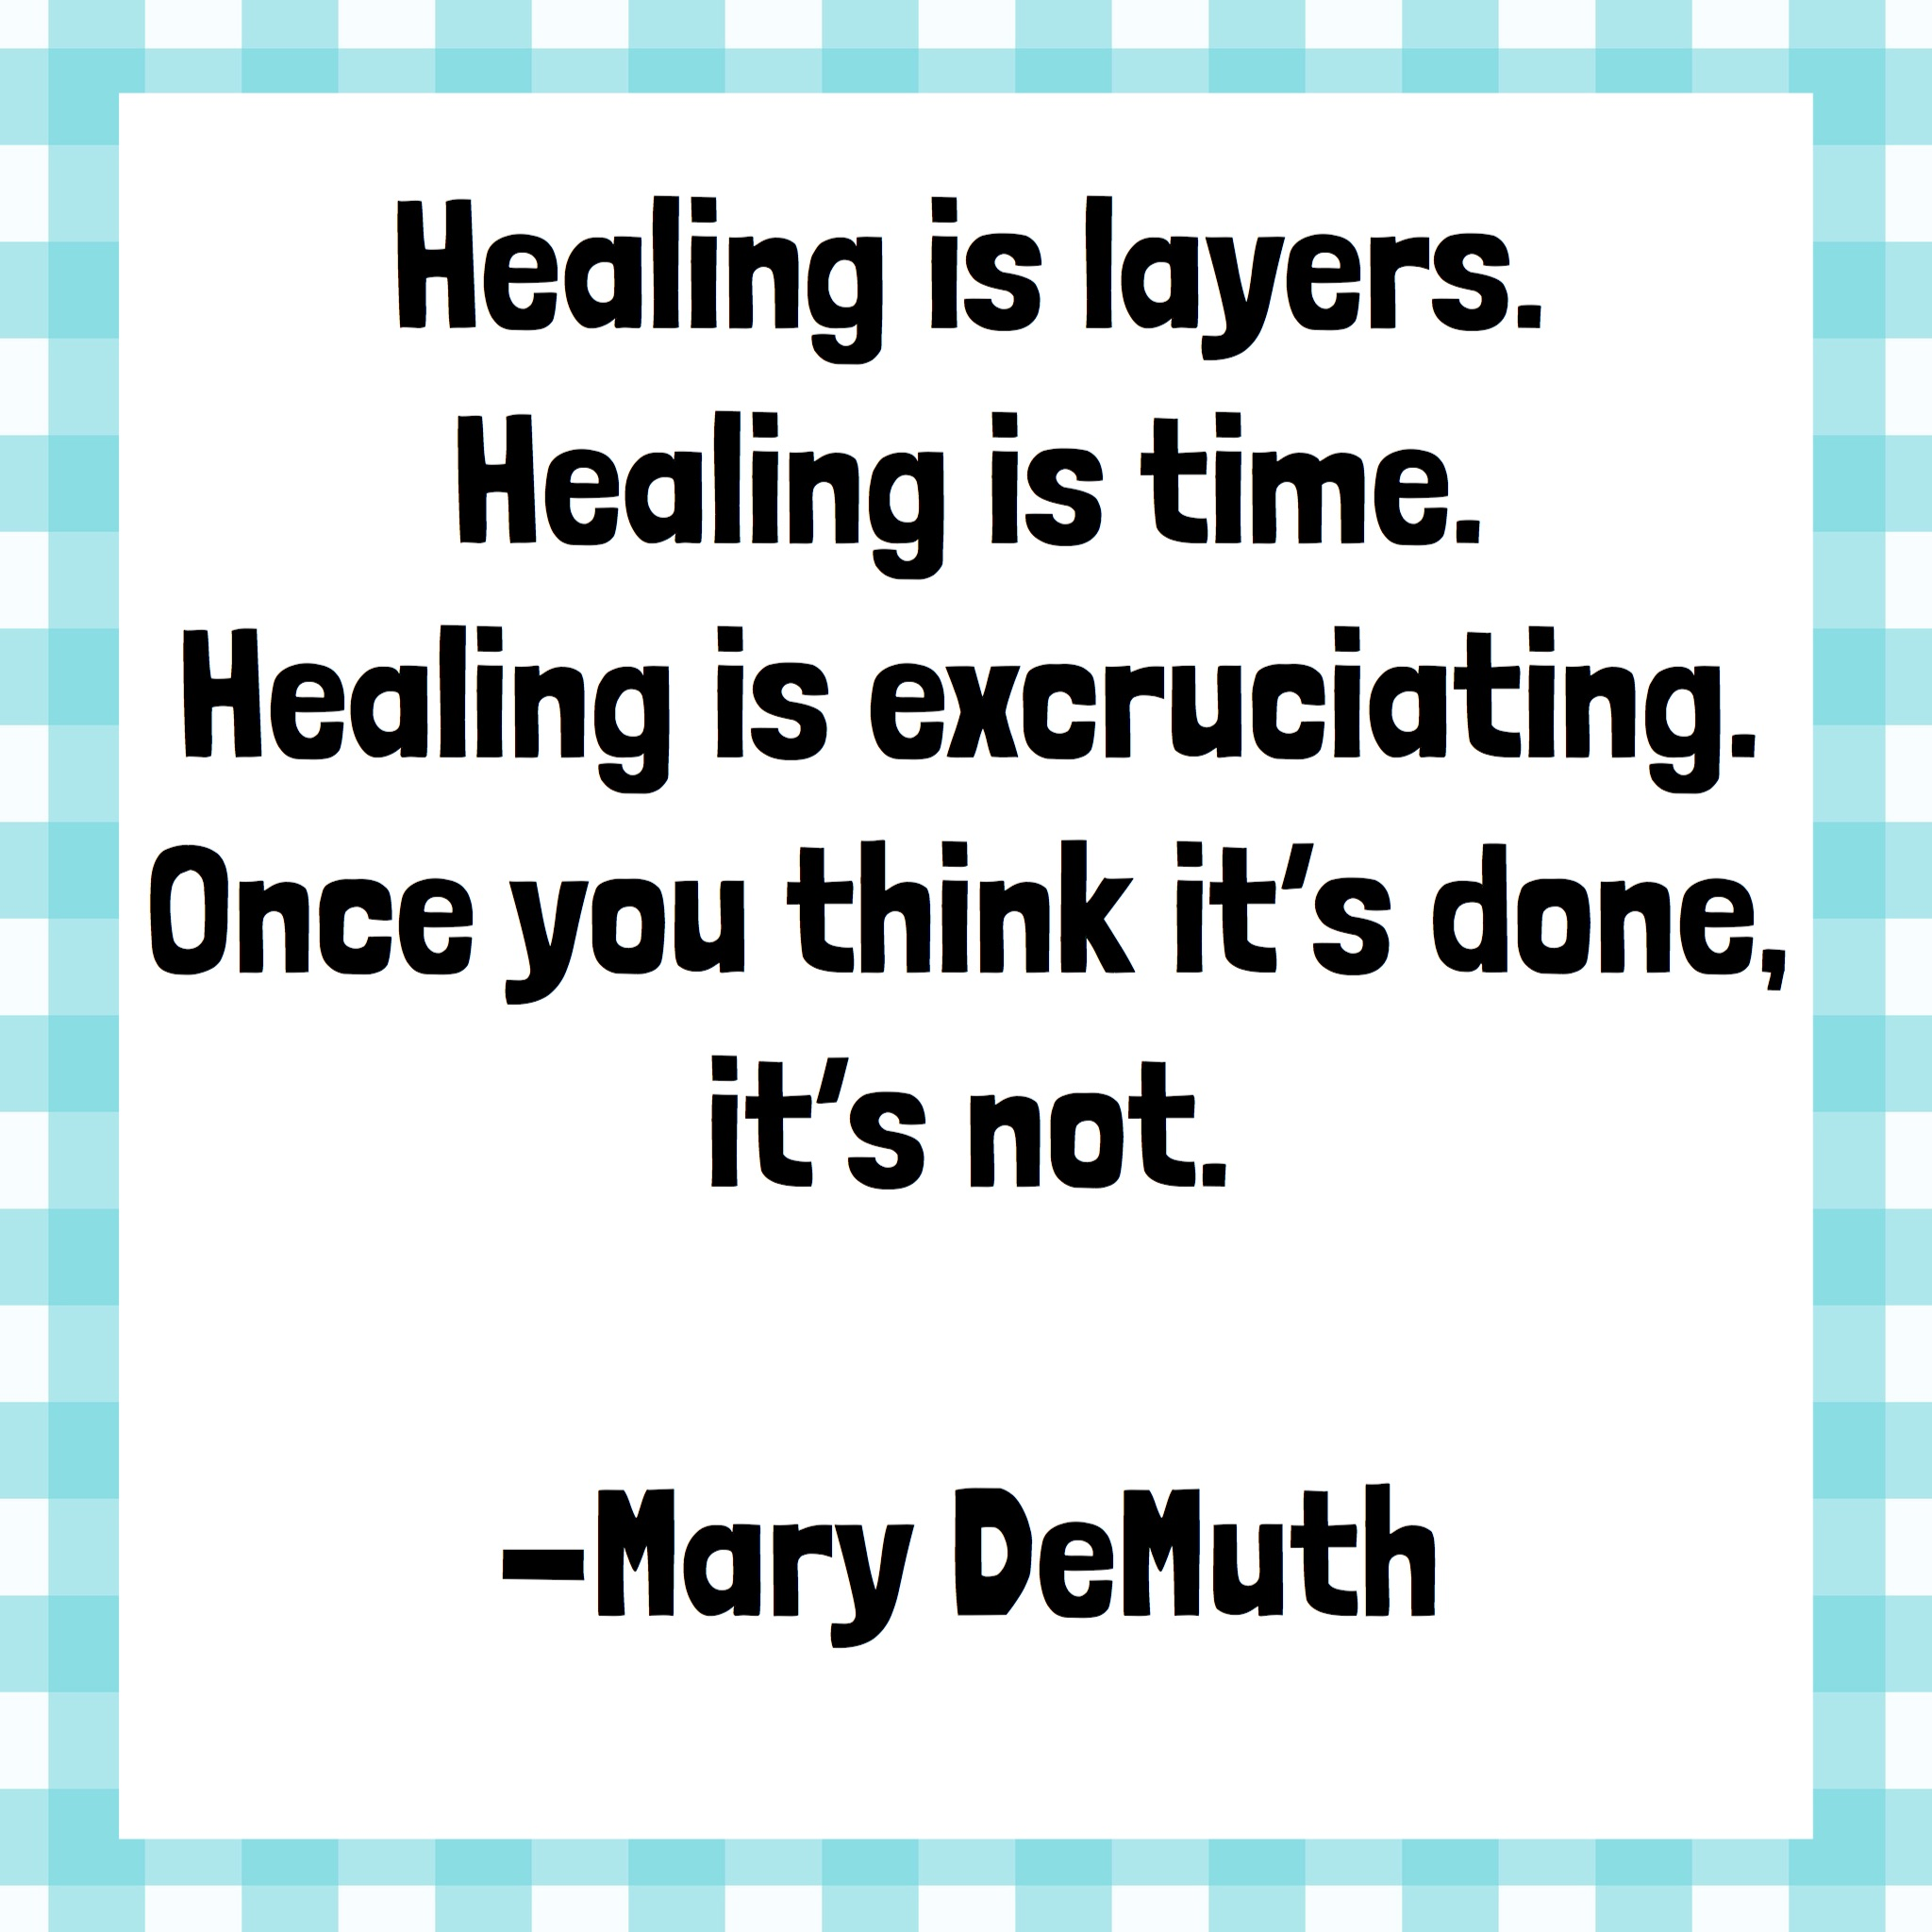 Healing is Excruciating